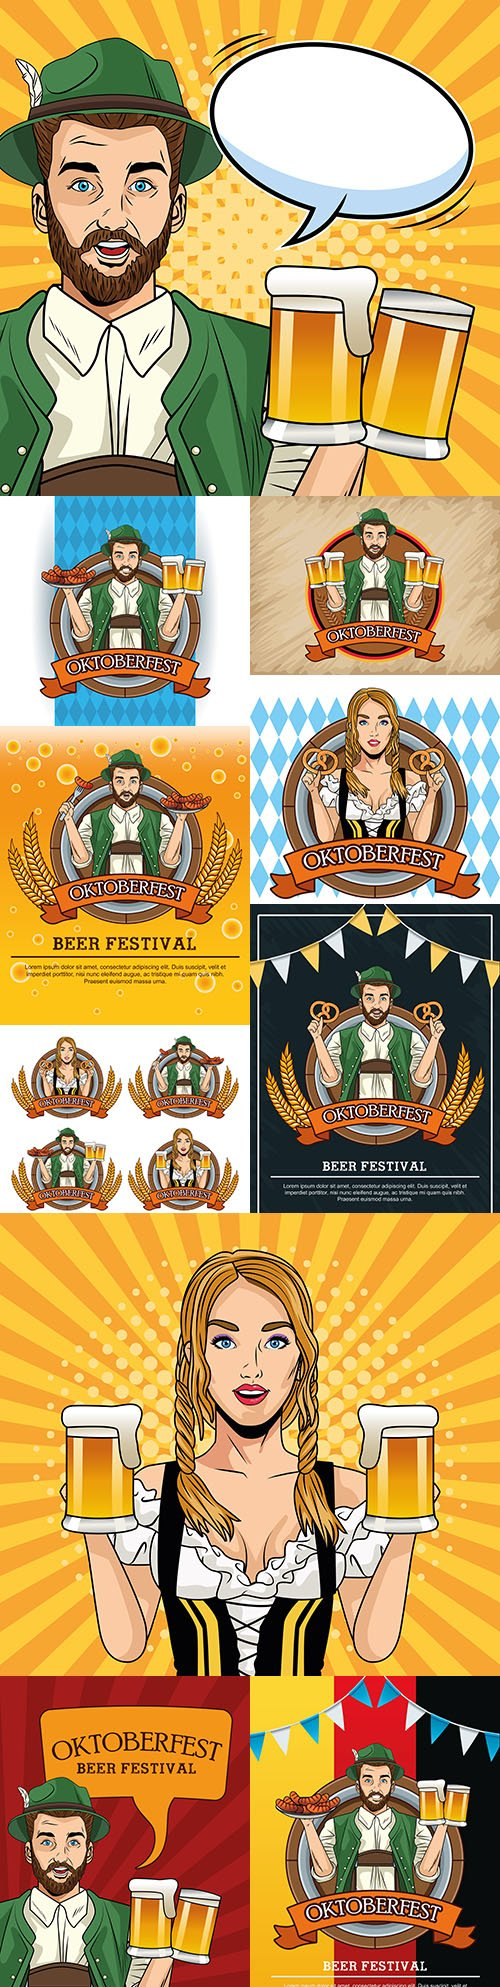 Oktoberfest festival beer party vintage illustration 6